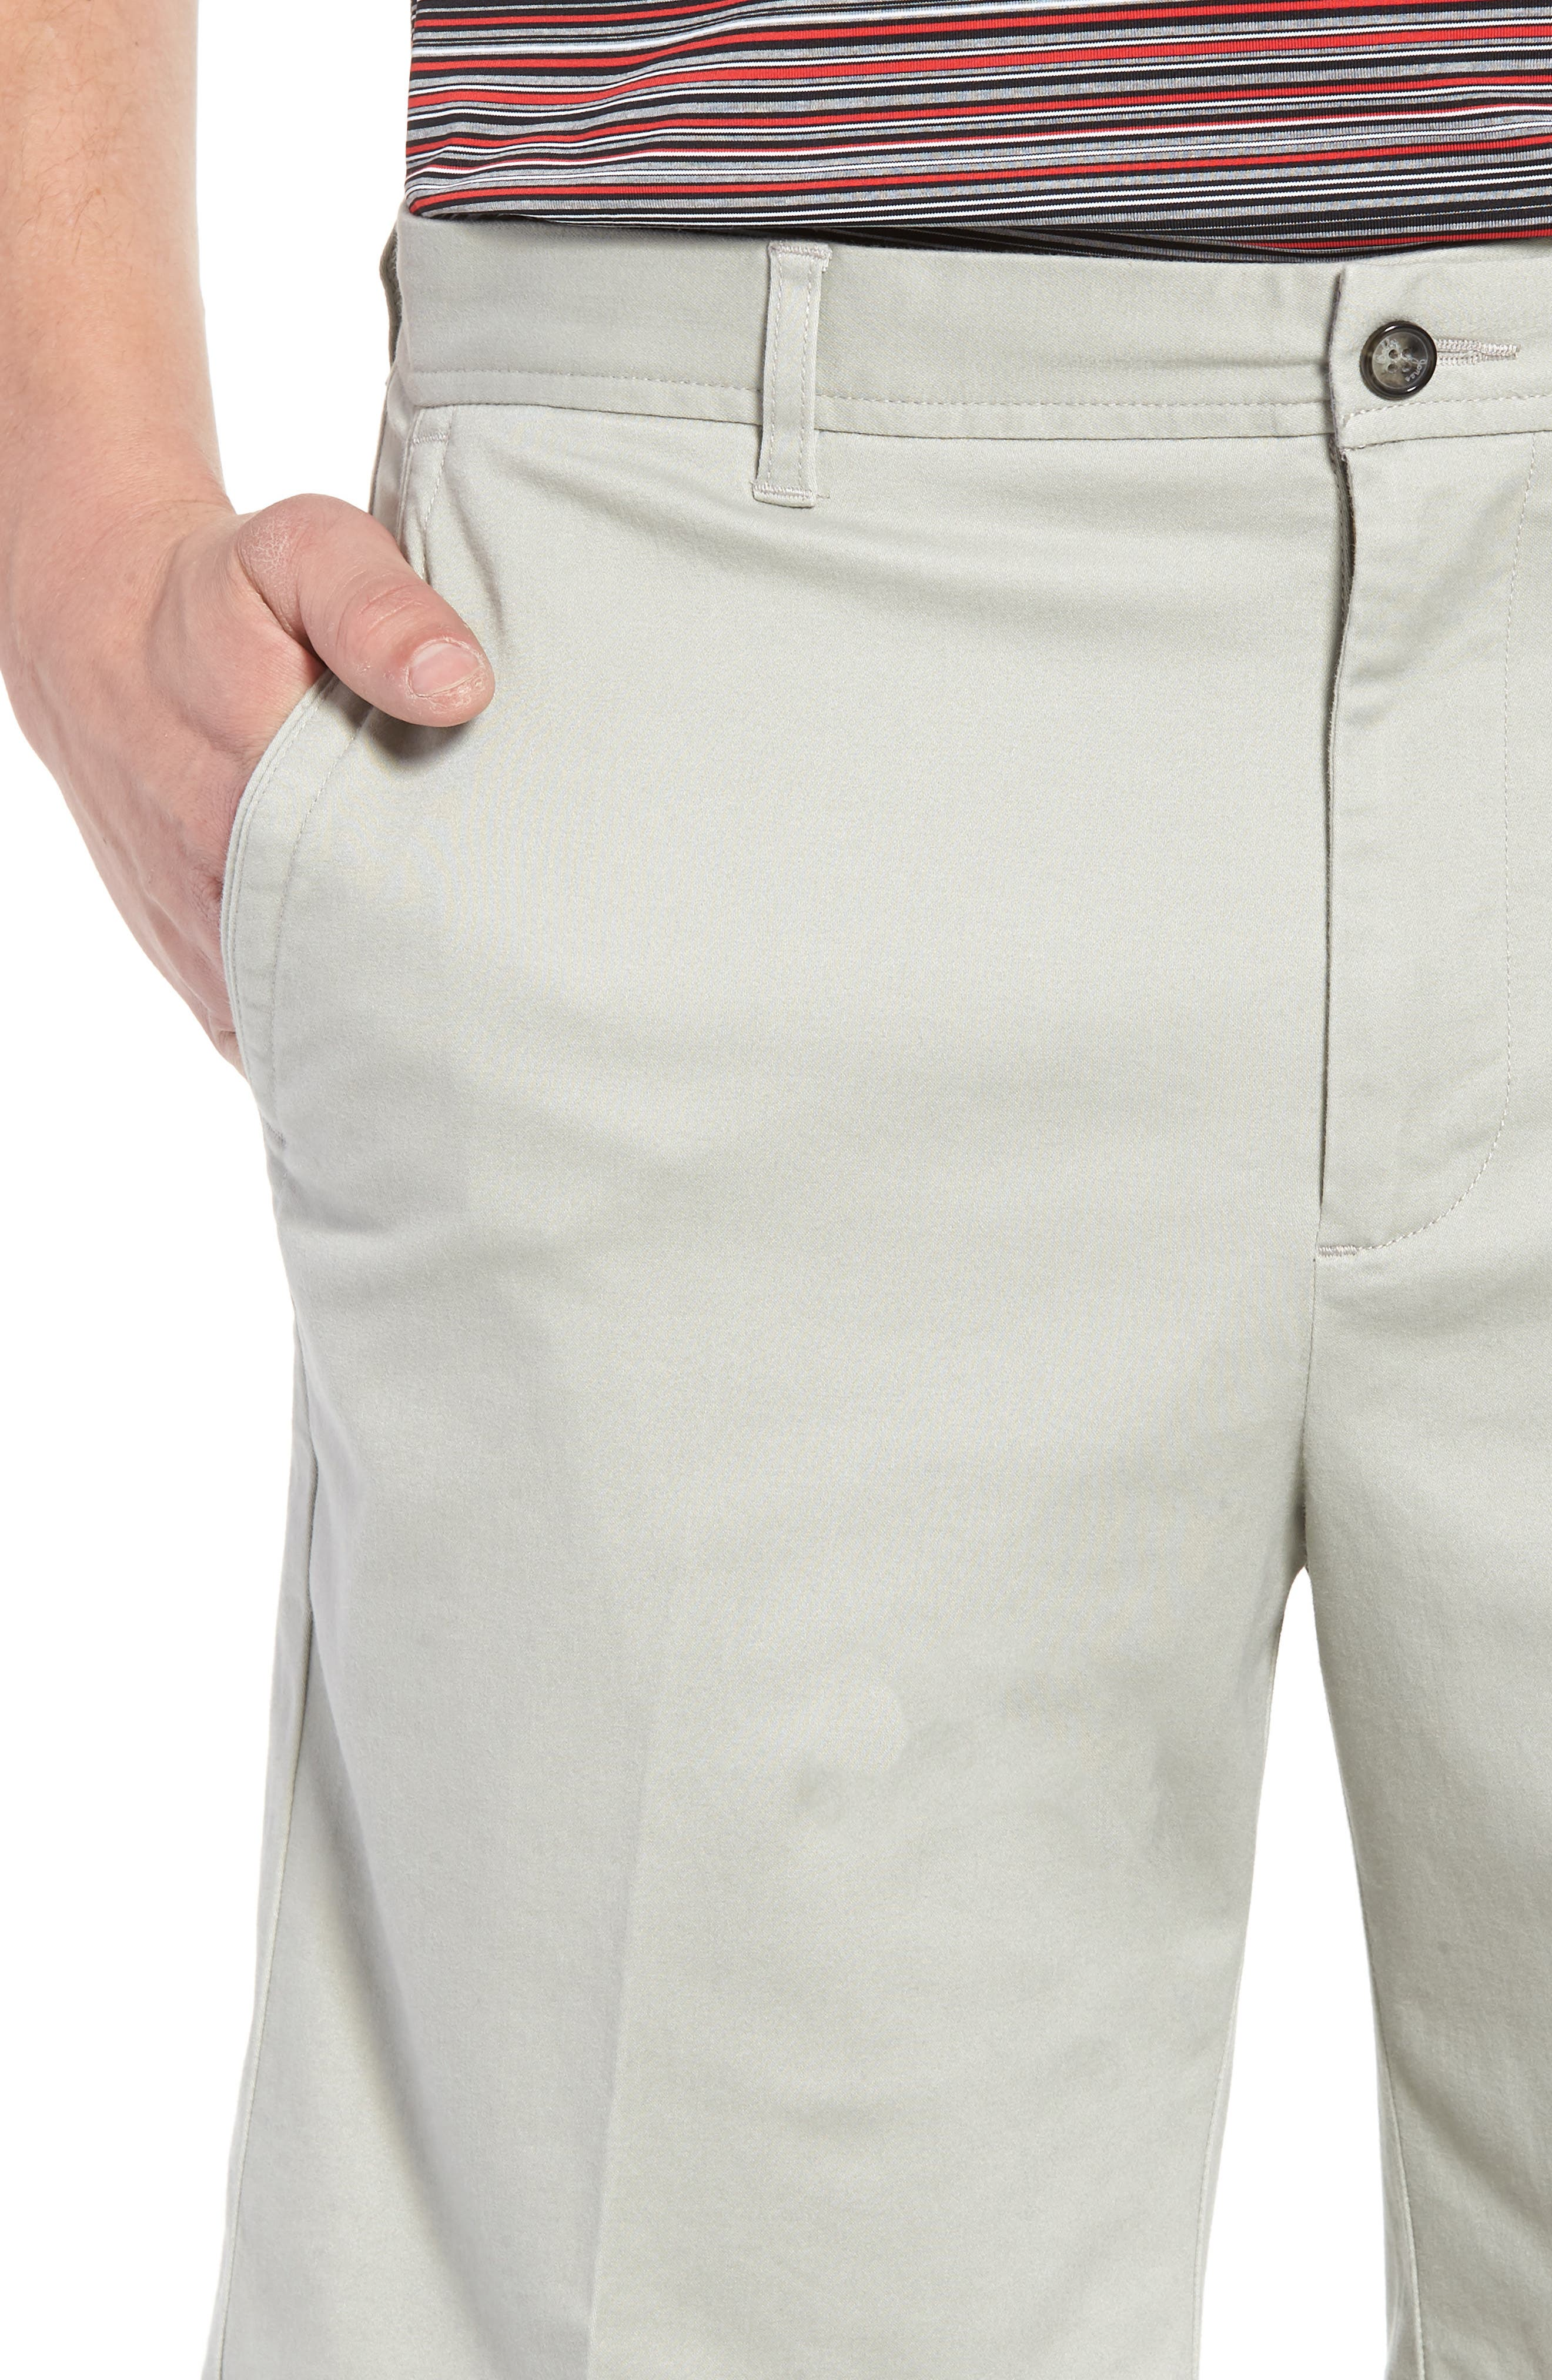 St. Charles Stretch Twill Shorts,                             Alternate thumbnail 4, color,                             051